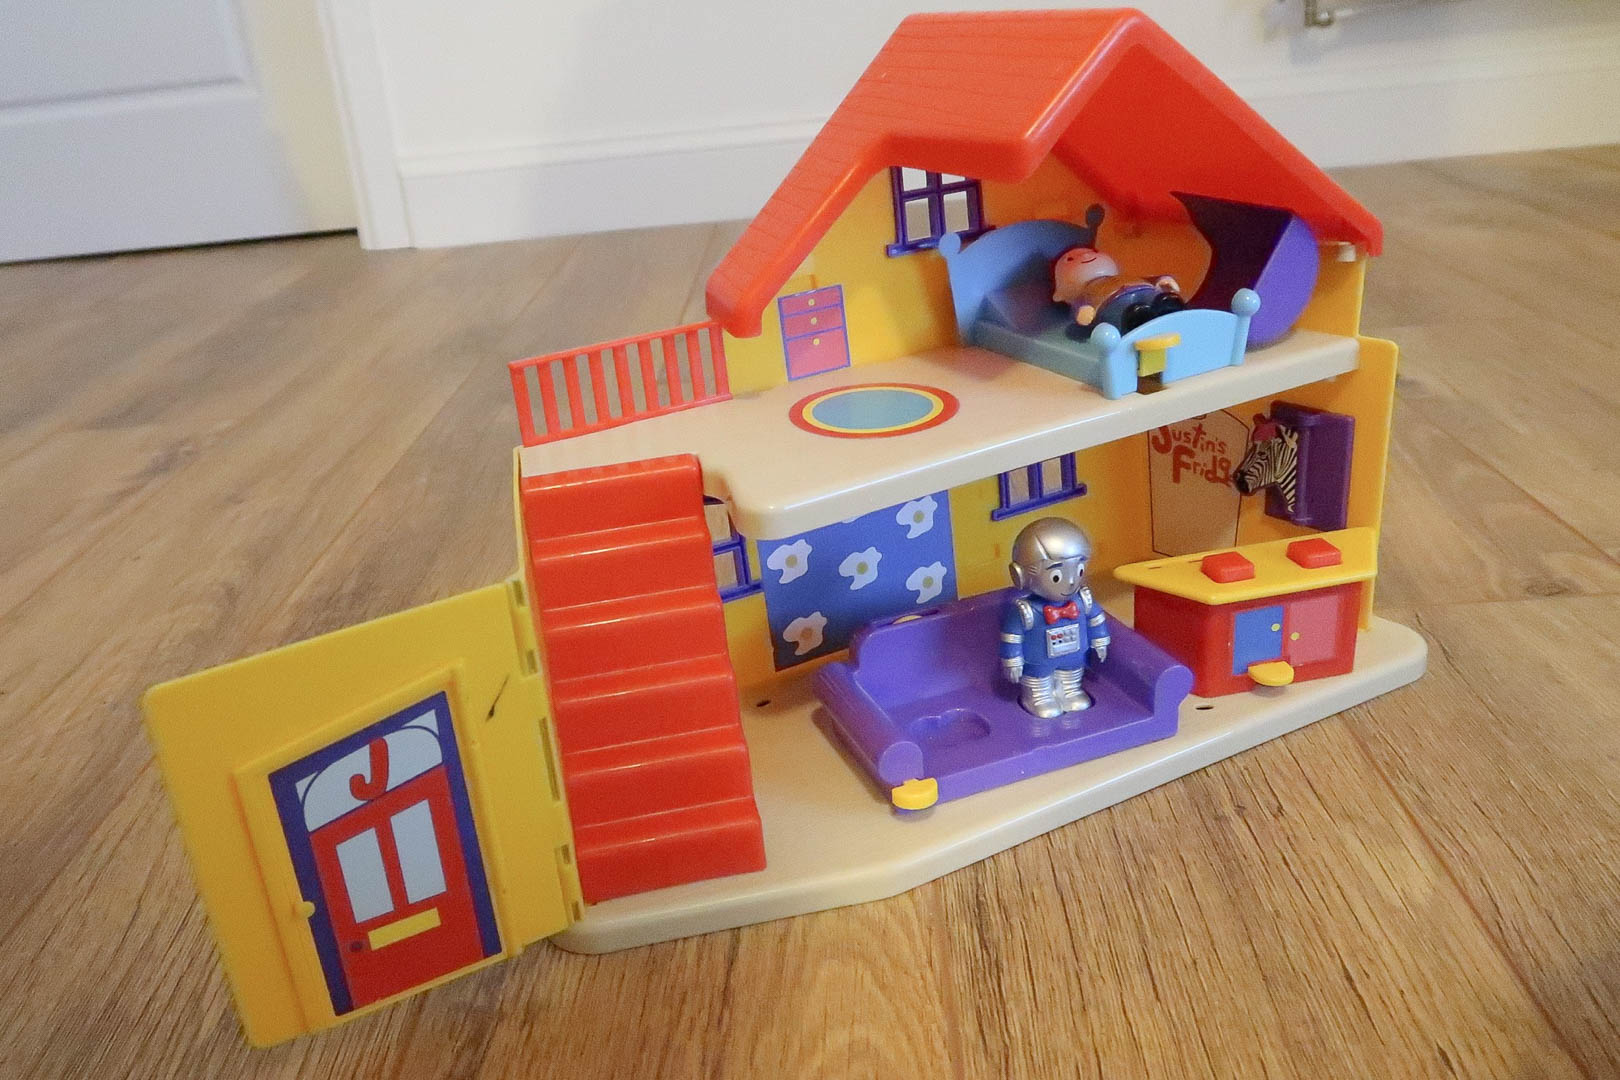 Justins House Playset Review From Golden Bear Toys